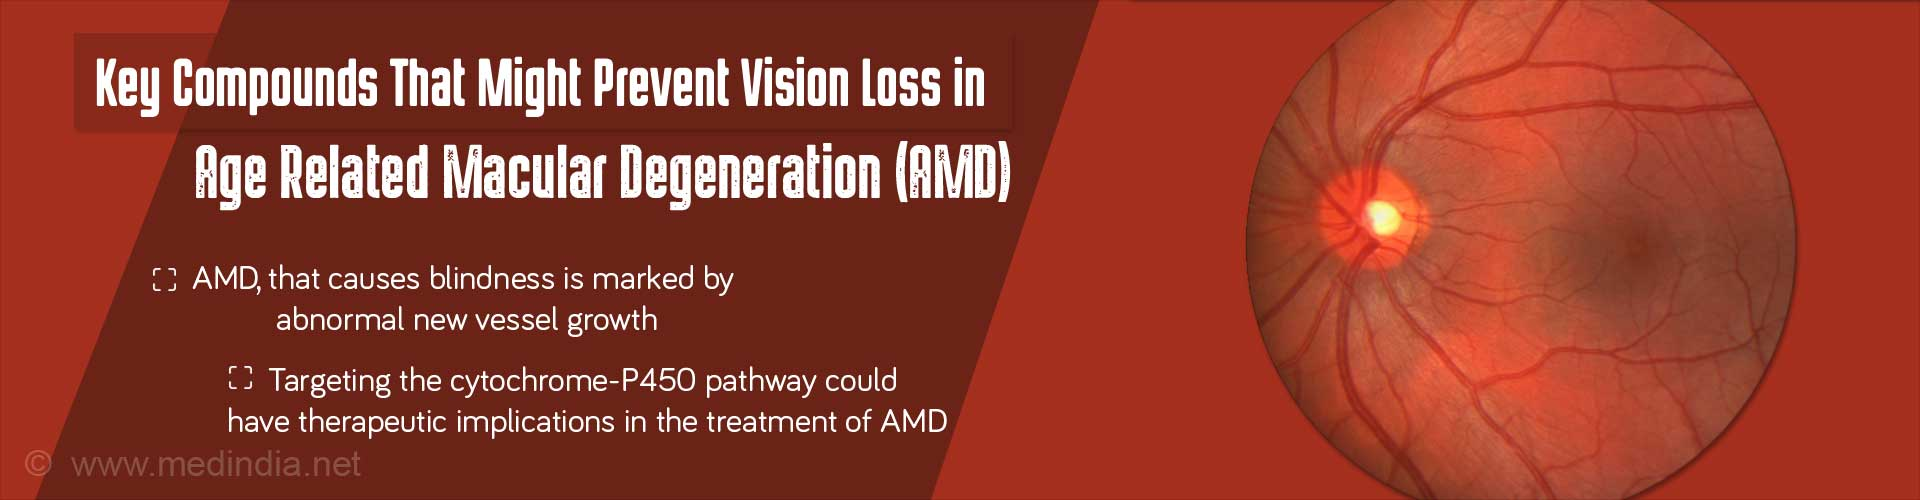 Key compounds that might prevent vision loss in age-related macular degeneration (AMD) - AMD, that cause blindness is marked by abnormal new vessel growth - targeting the cytochrome-P450 pathway could have therapeutic implications in the treatment of AMD